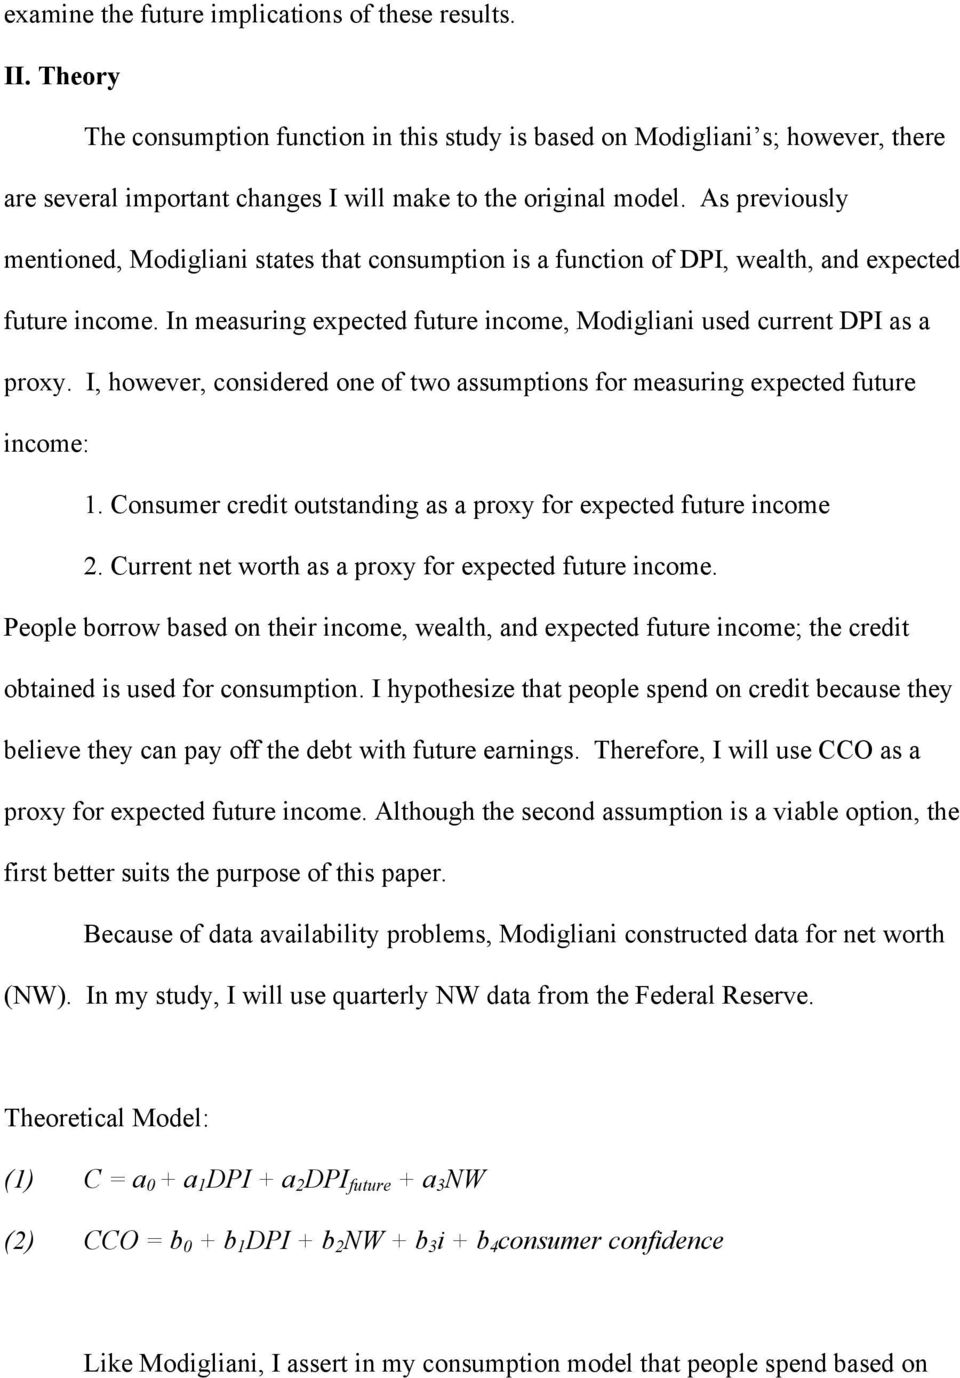 As previously mentioned, Modigliani states that consumption is a function of DPI, wealth, and expected future income. In measuring expected future income, Modigliani used current DPI as a proxy.